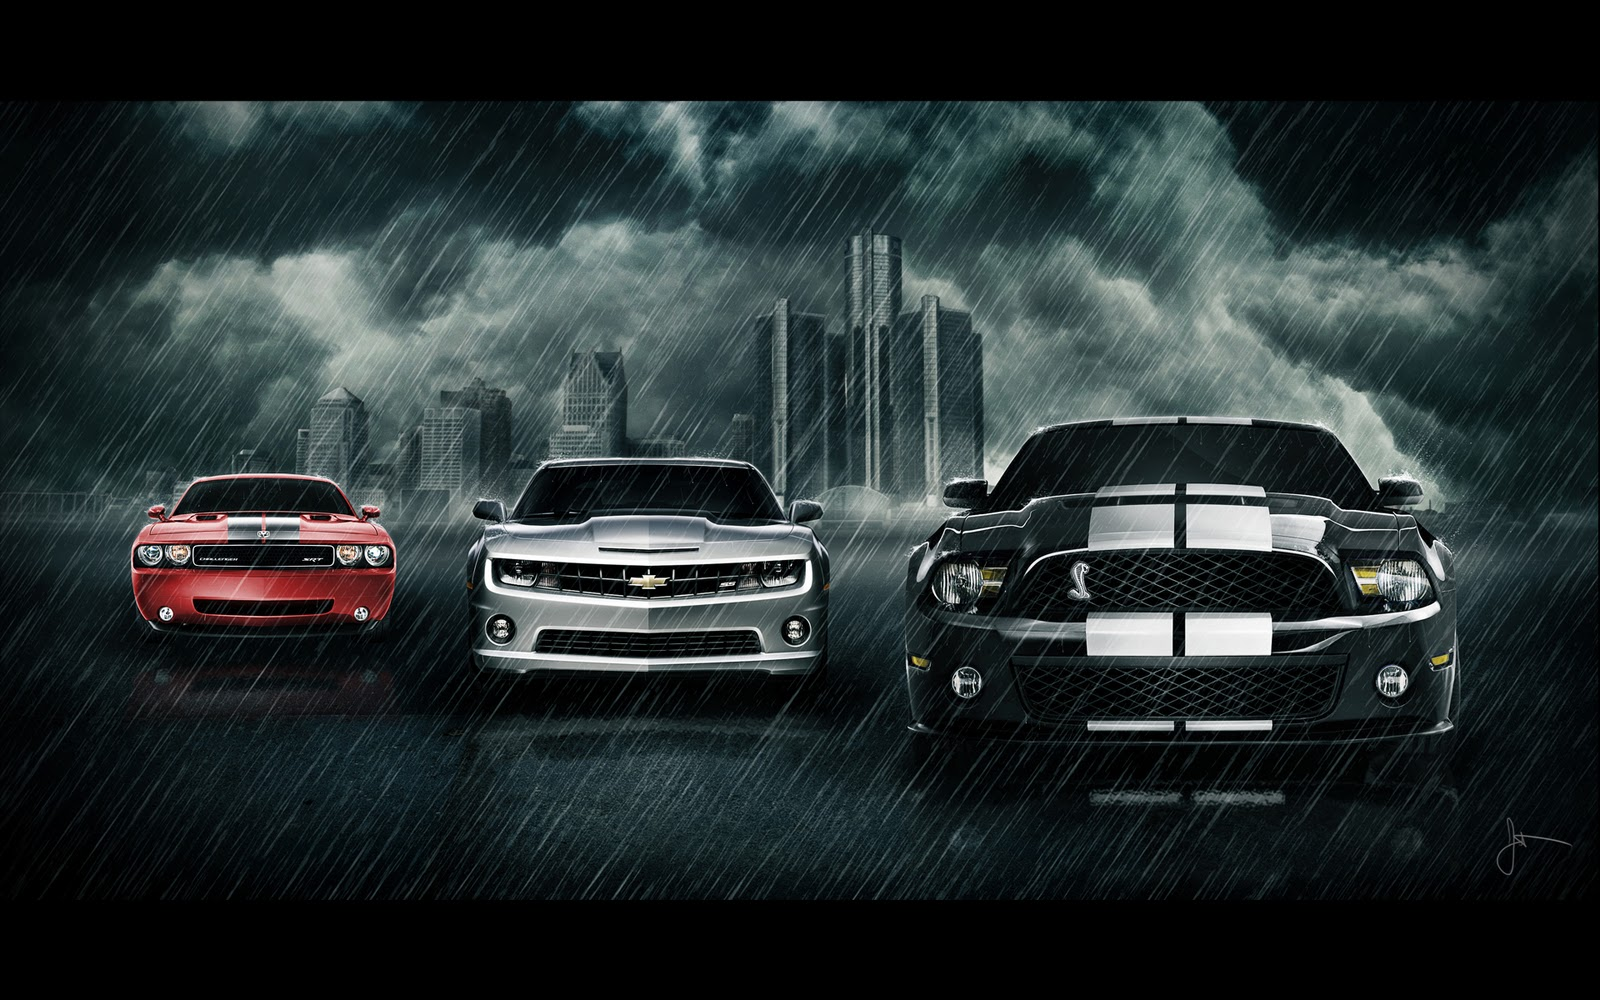 hd car wallpapers is the no 1 source of car wallpapers 1600x1000